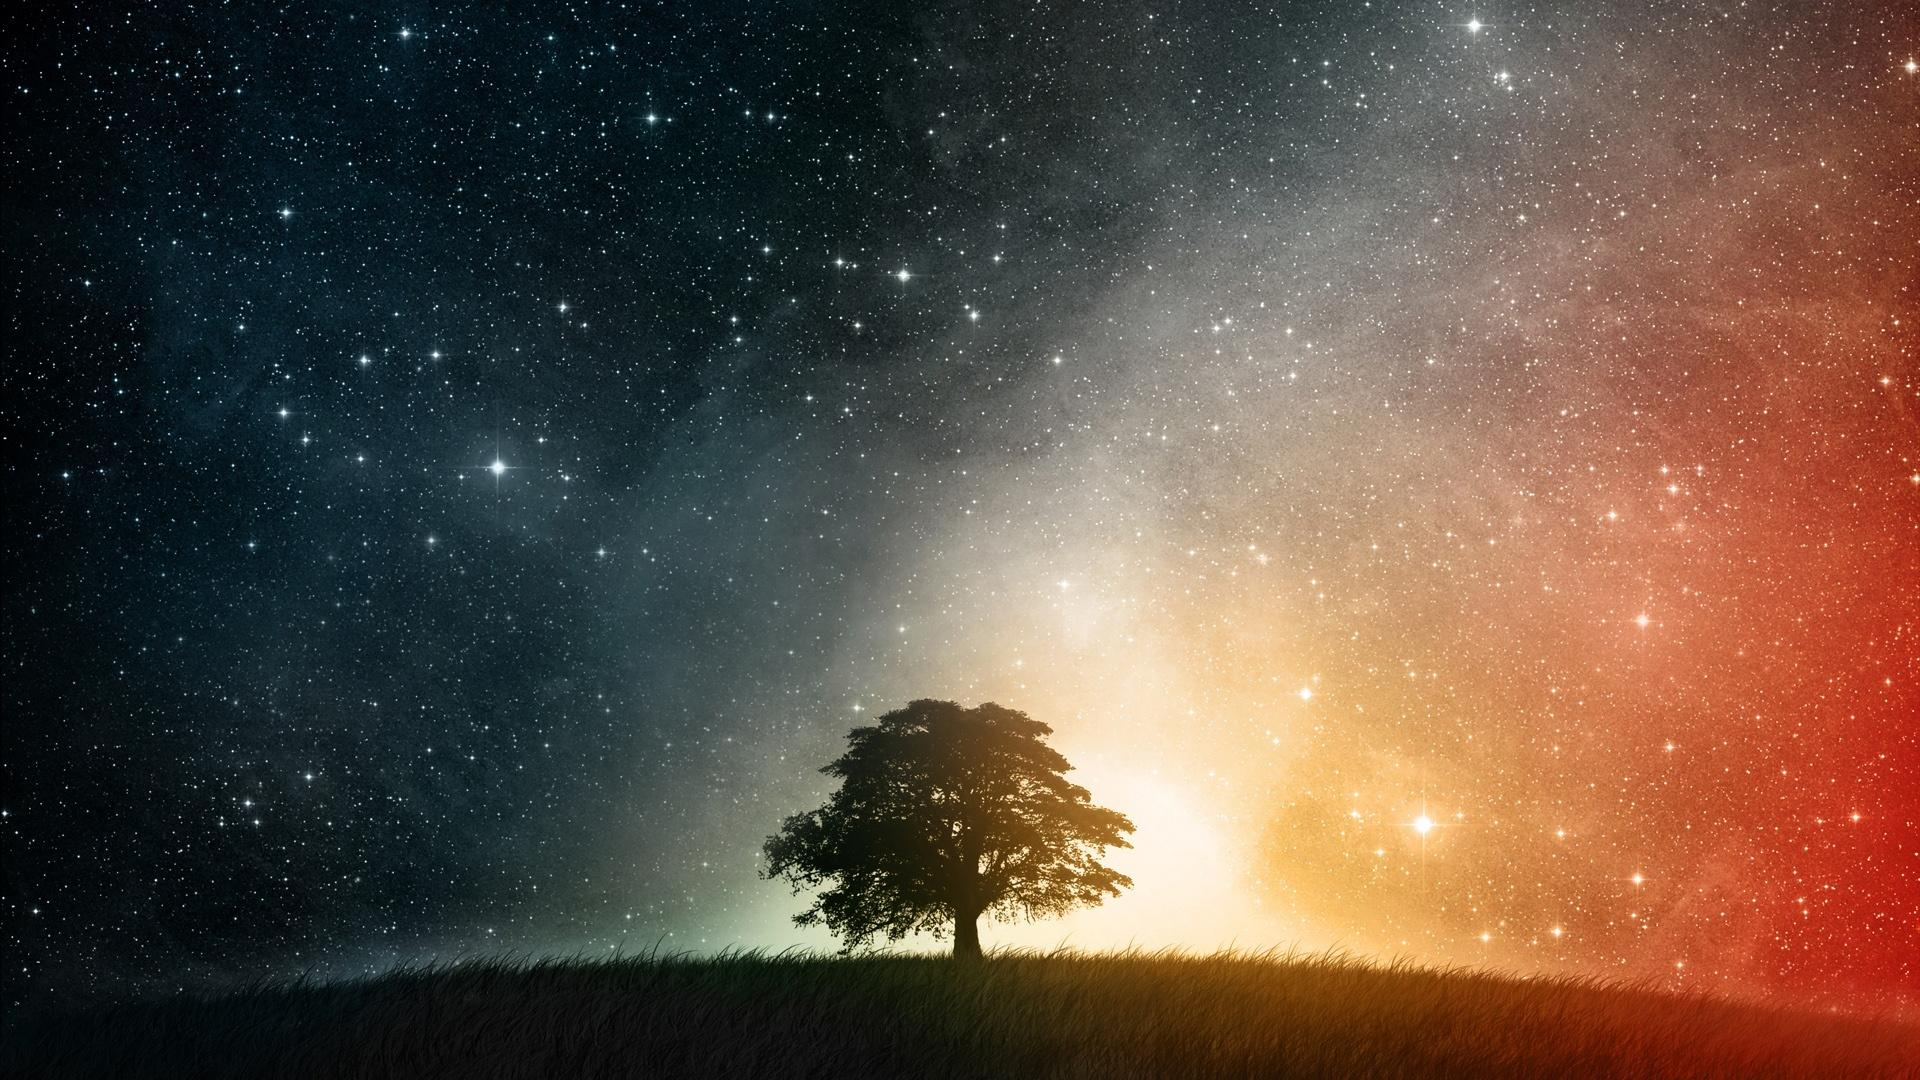 High Quality Space Backgrounds Clipart 40 Big Photos Free